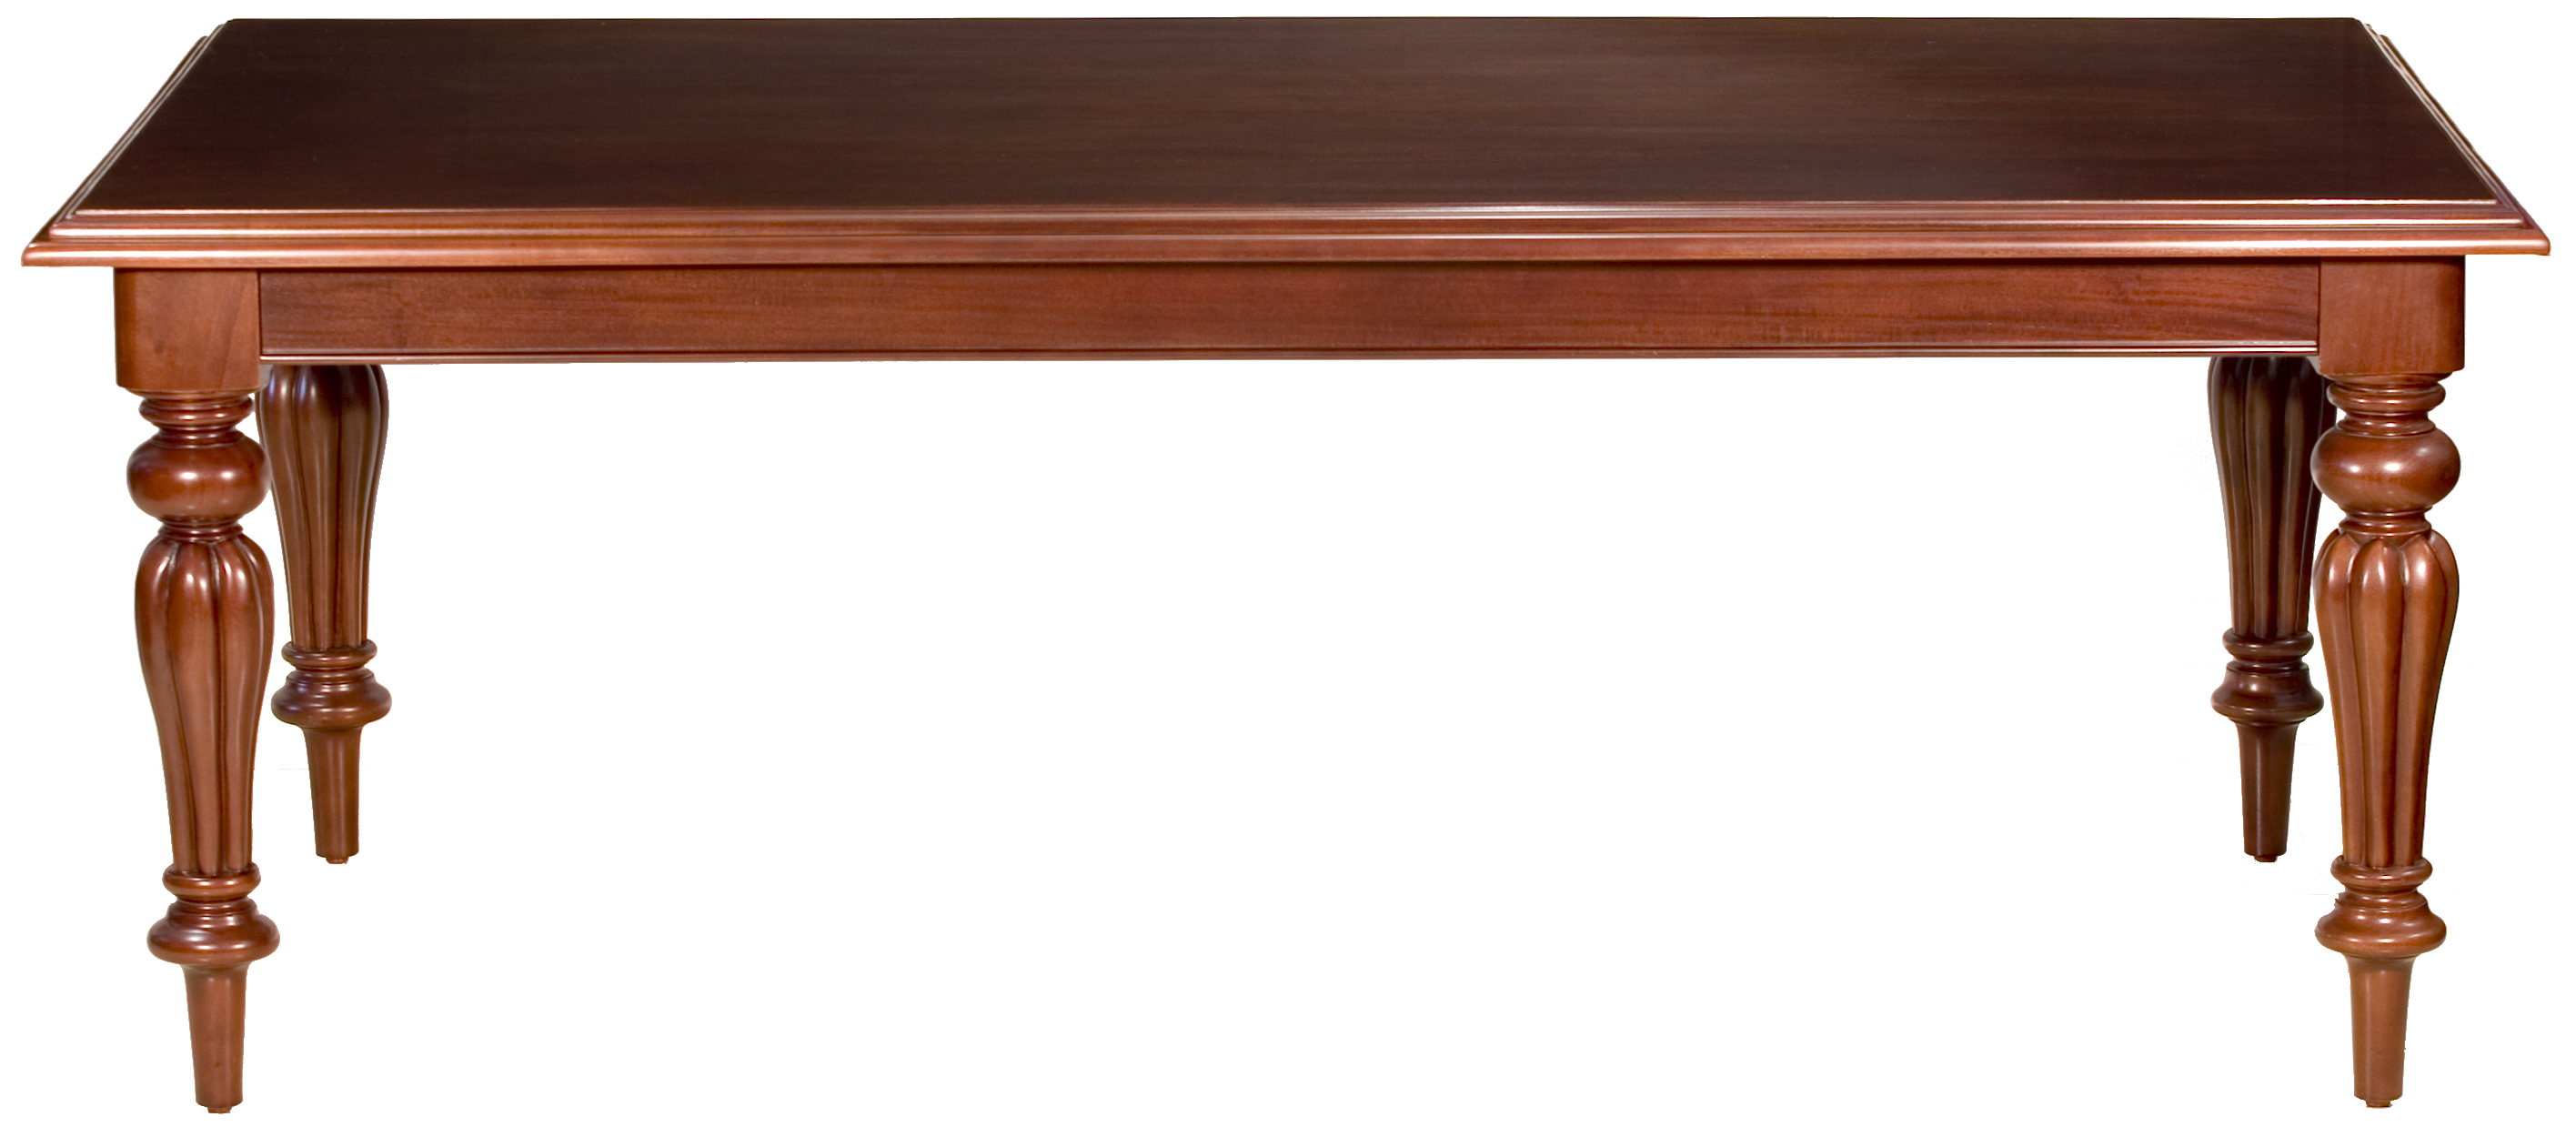 Topolansky victorian dining table 280x120 for Table in table